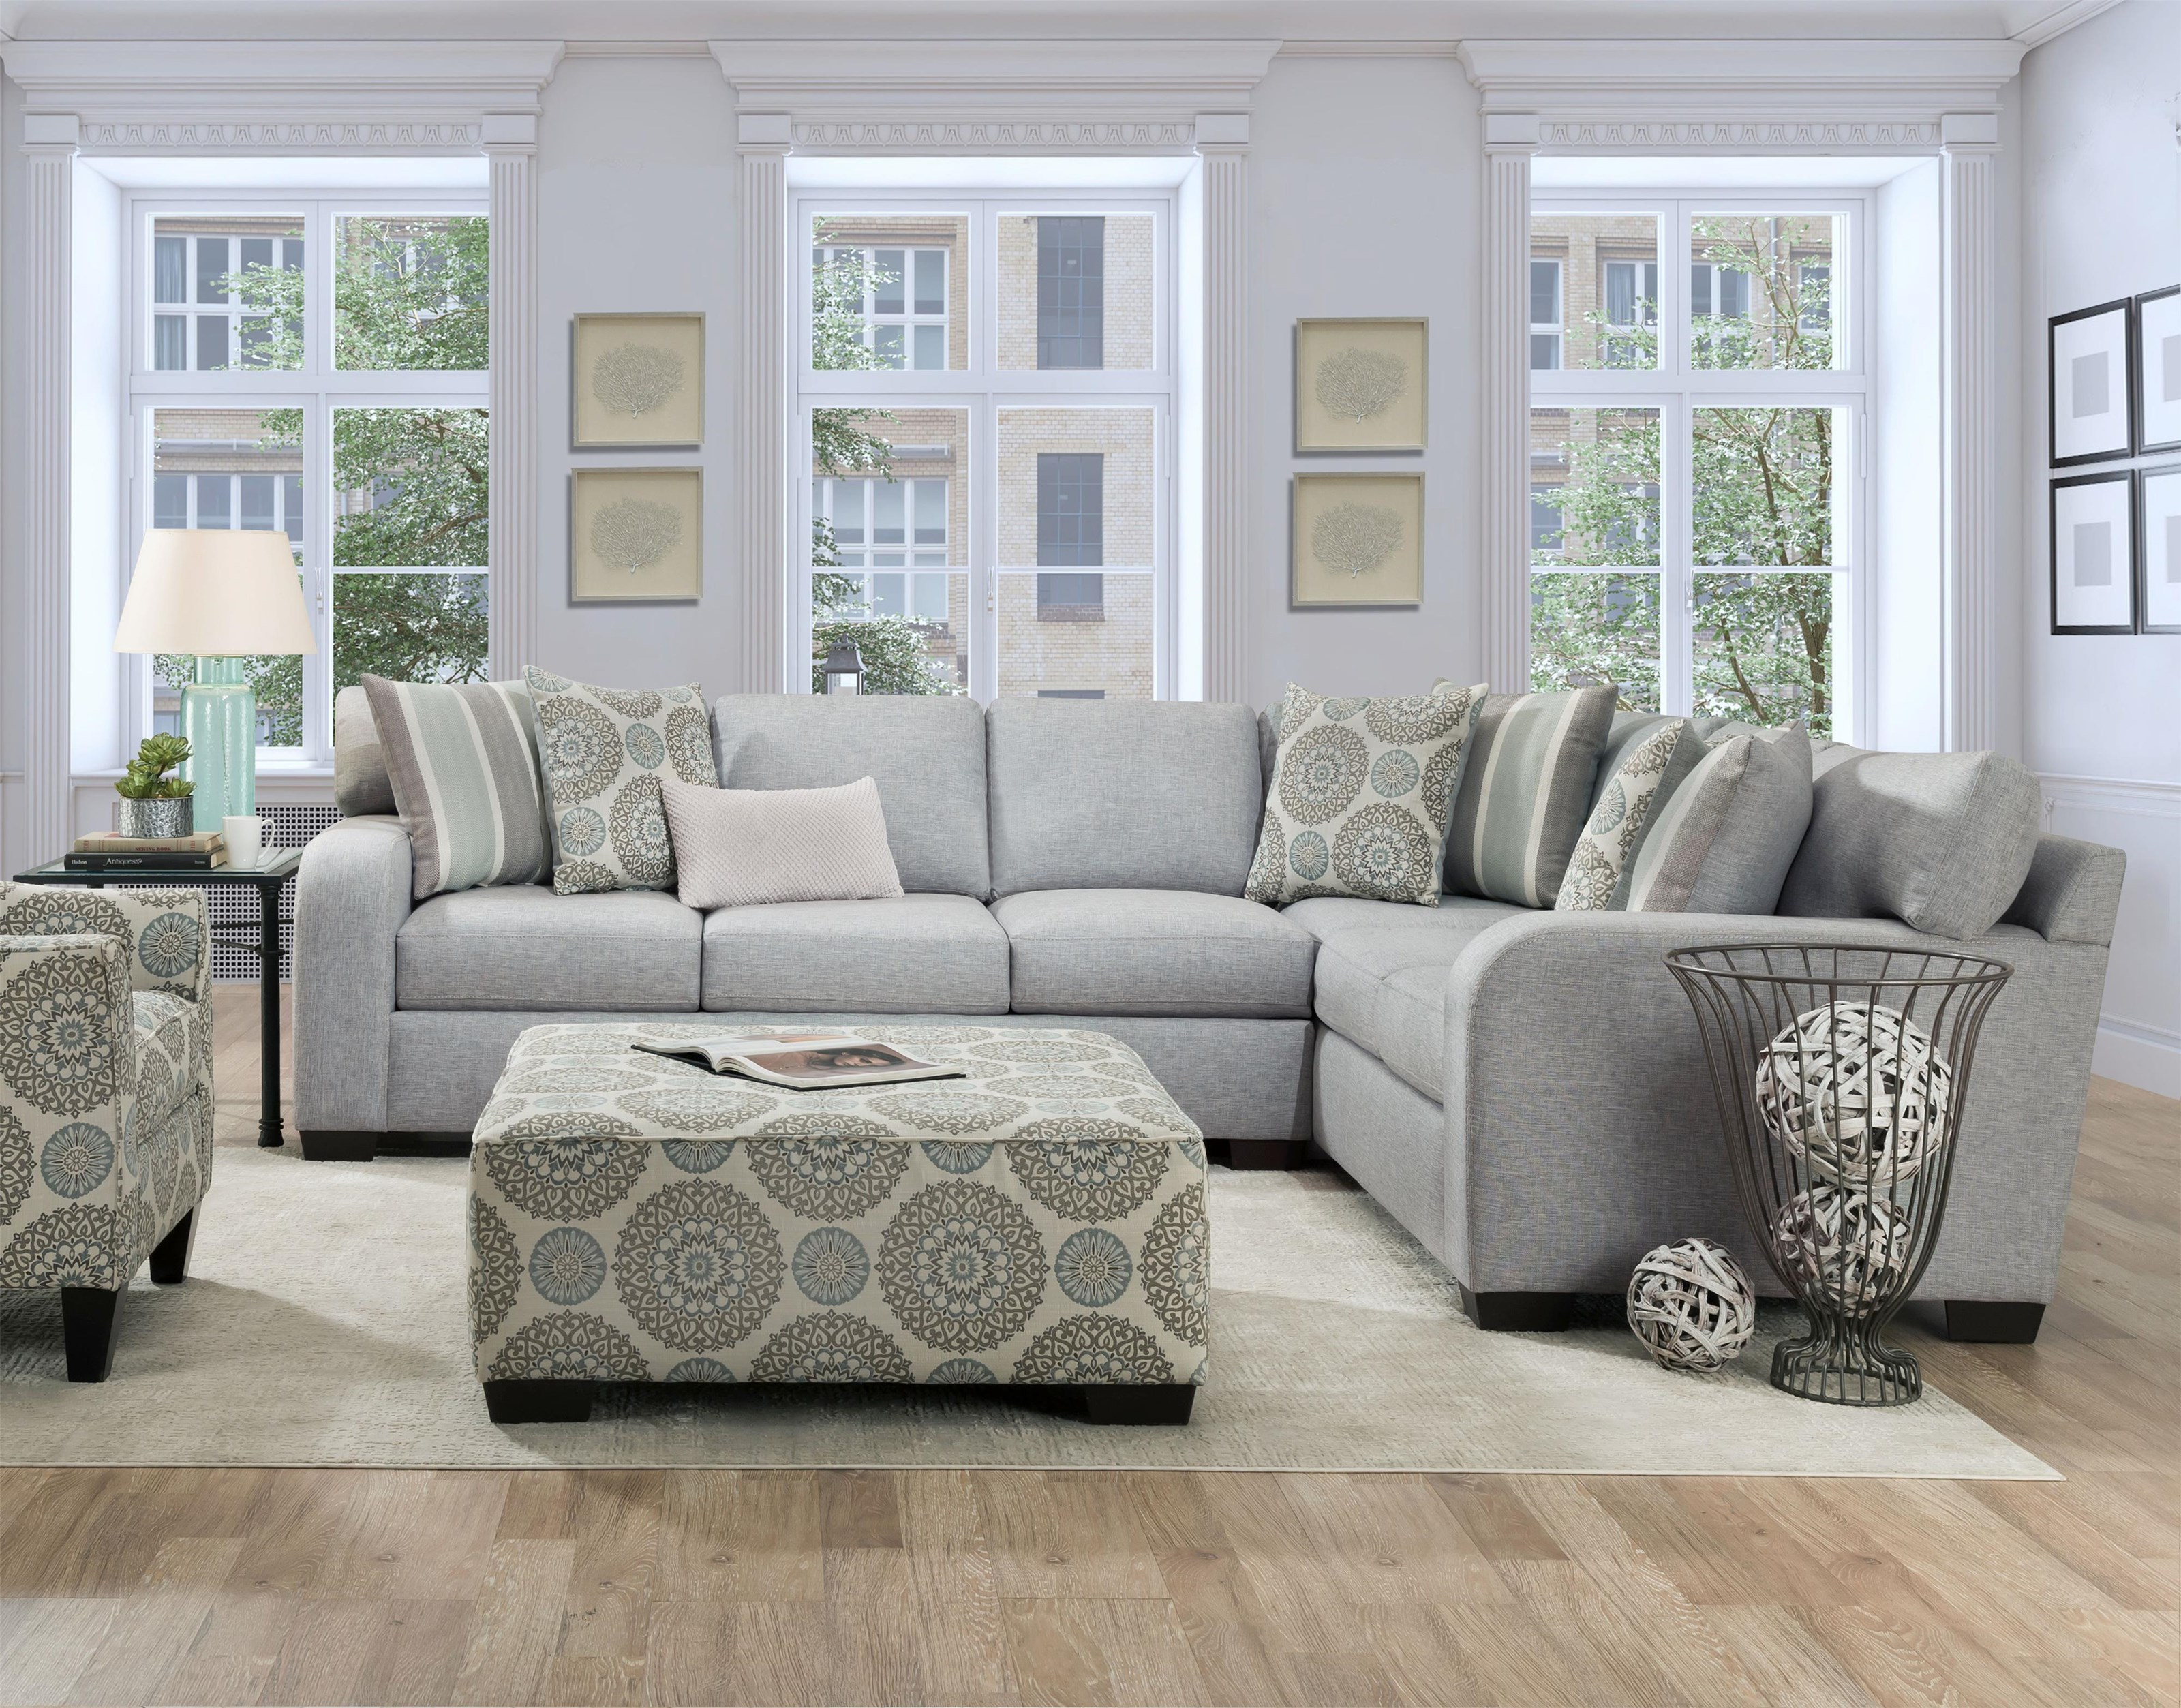 1049 SPA Two Piece Contemporary Sectional by Behold Home at Furniture Fair - North Carolina